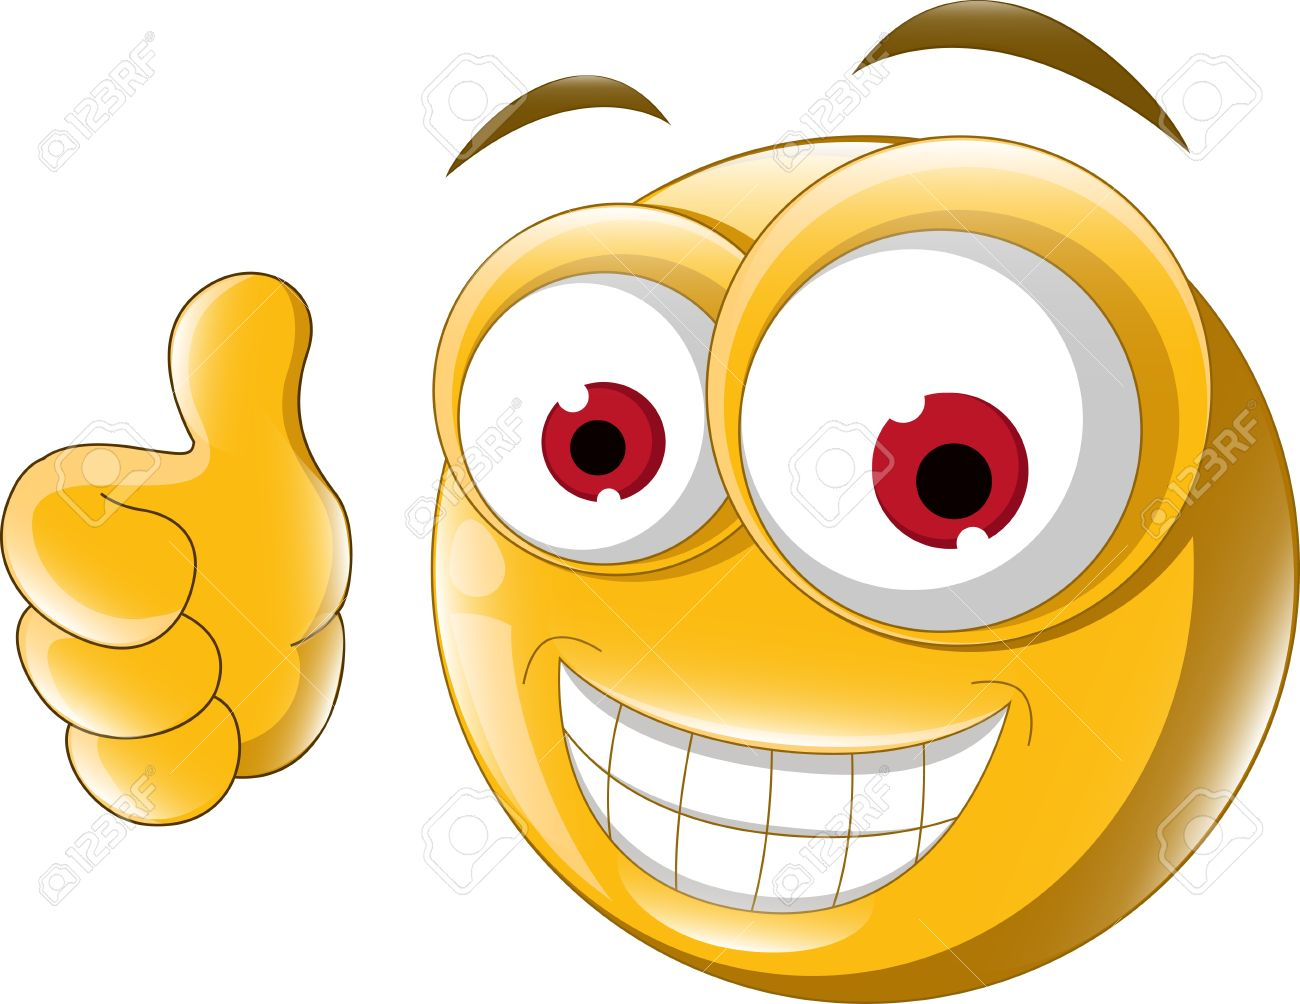 best smiley face thumbs up 1735 clipartion com Sad Face Clip Art Free Emoticon Images Clip Art Black and White